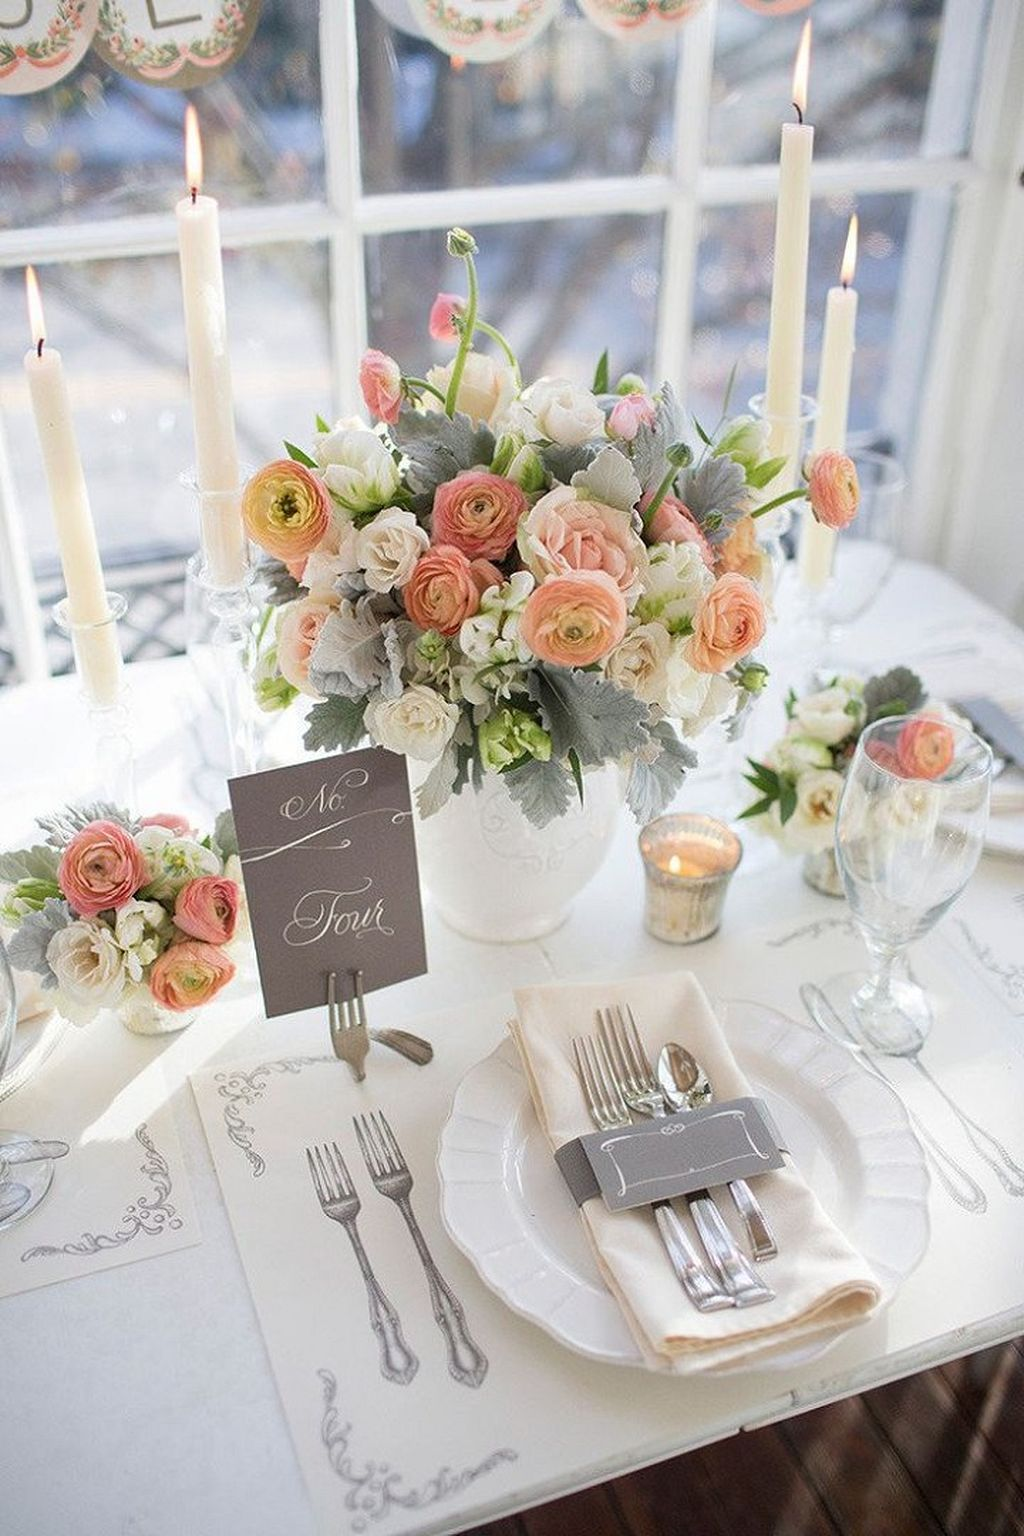 30+ Lovely Table Setting Ideas For Your Wedding & 30+ Lovely Table Setting Ideas For Your Wedding | Table settings ...